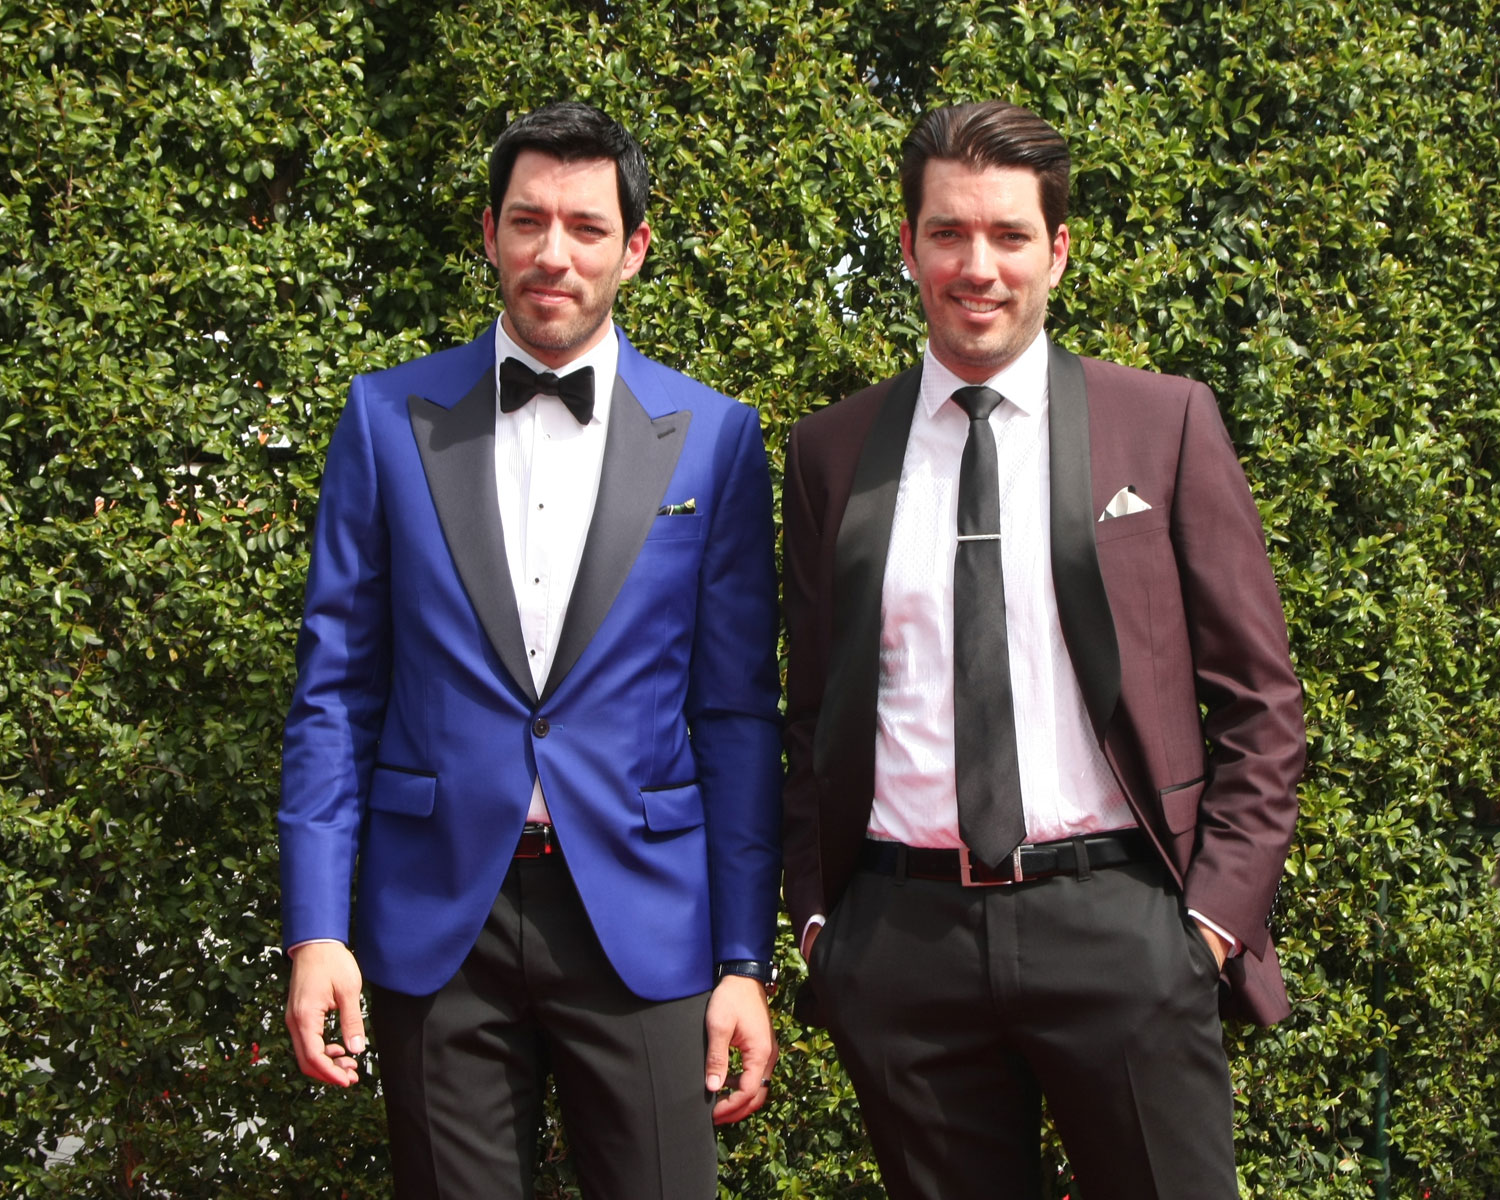 Property Brothers Wedding.Property Brothers Spinoff Has A Wedding Related Deadline